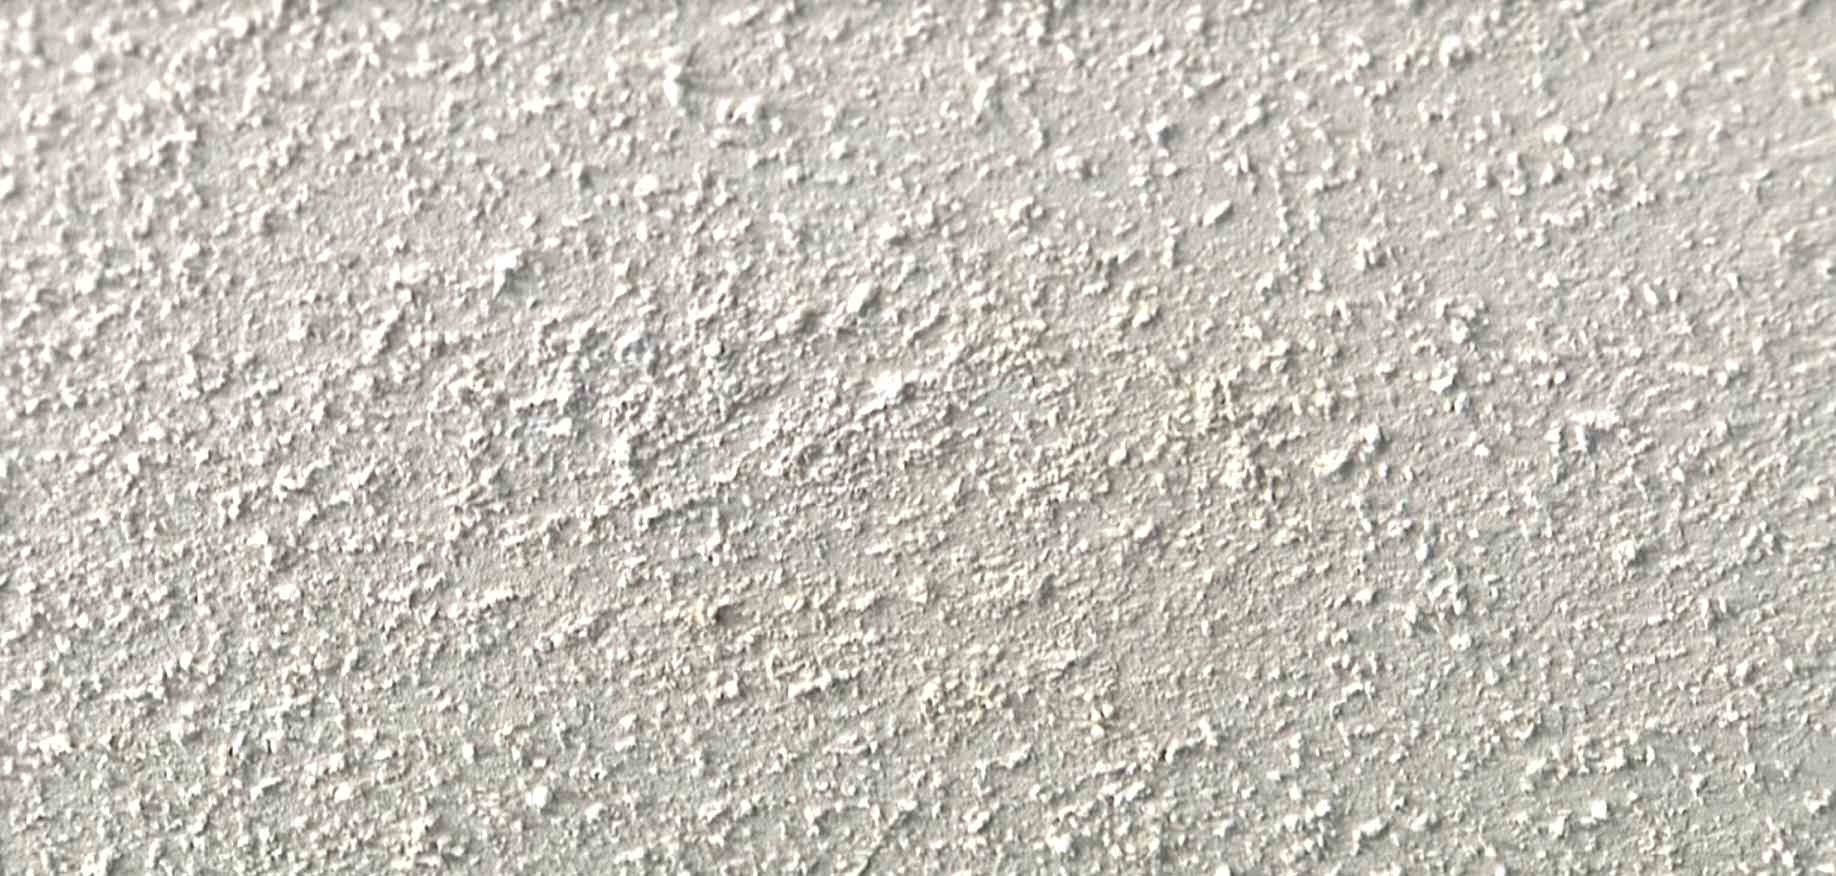 Easy Spray On Wall And Ceiling Textures